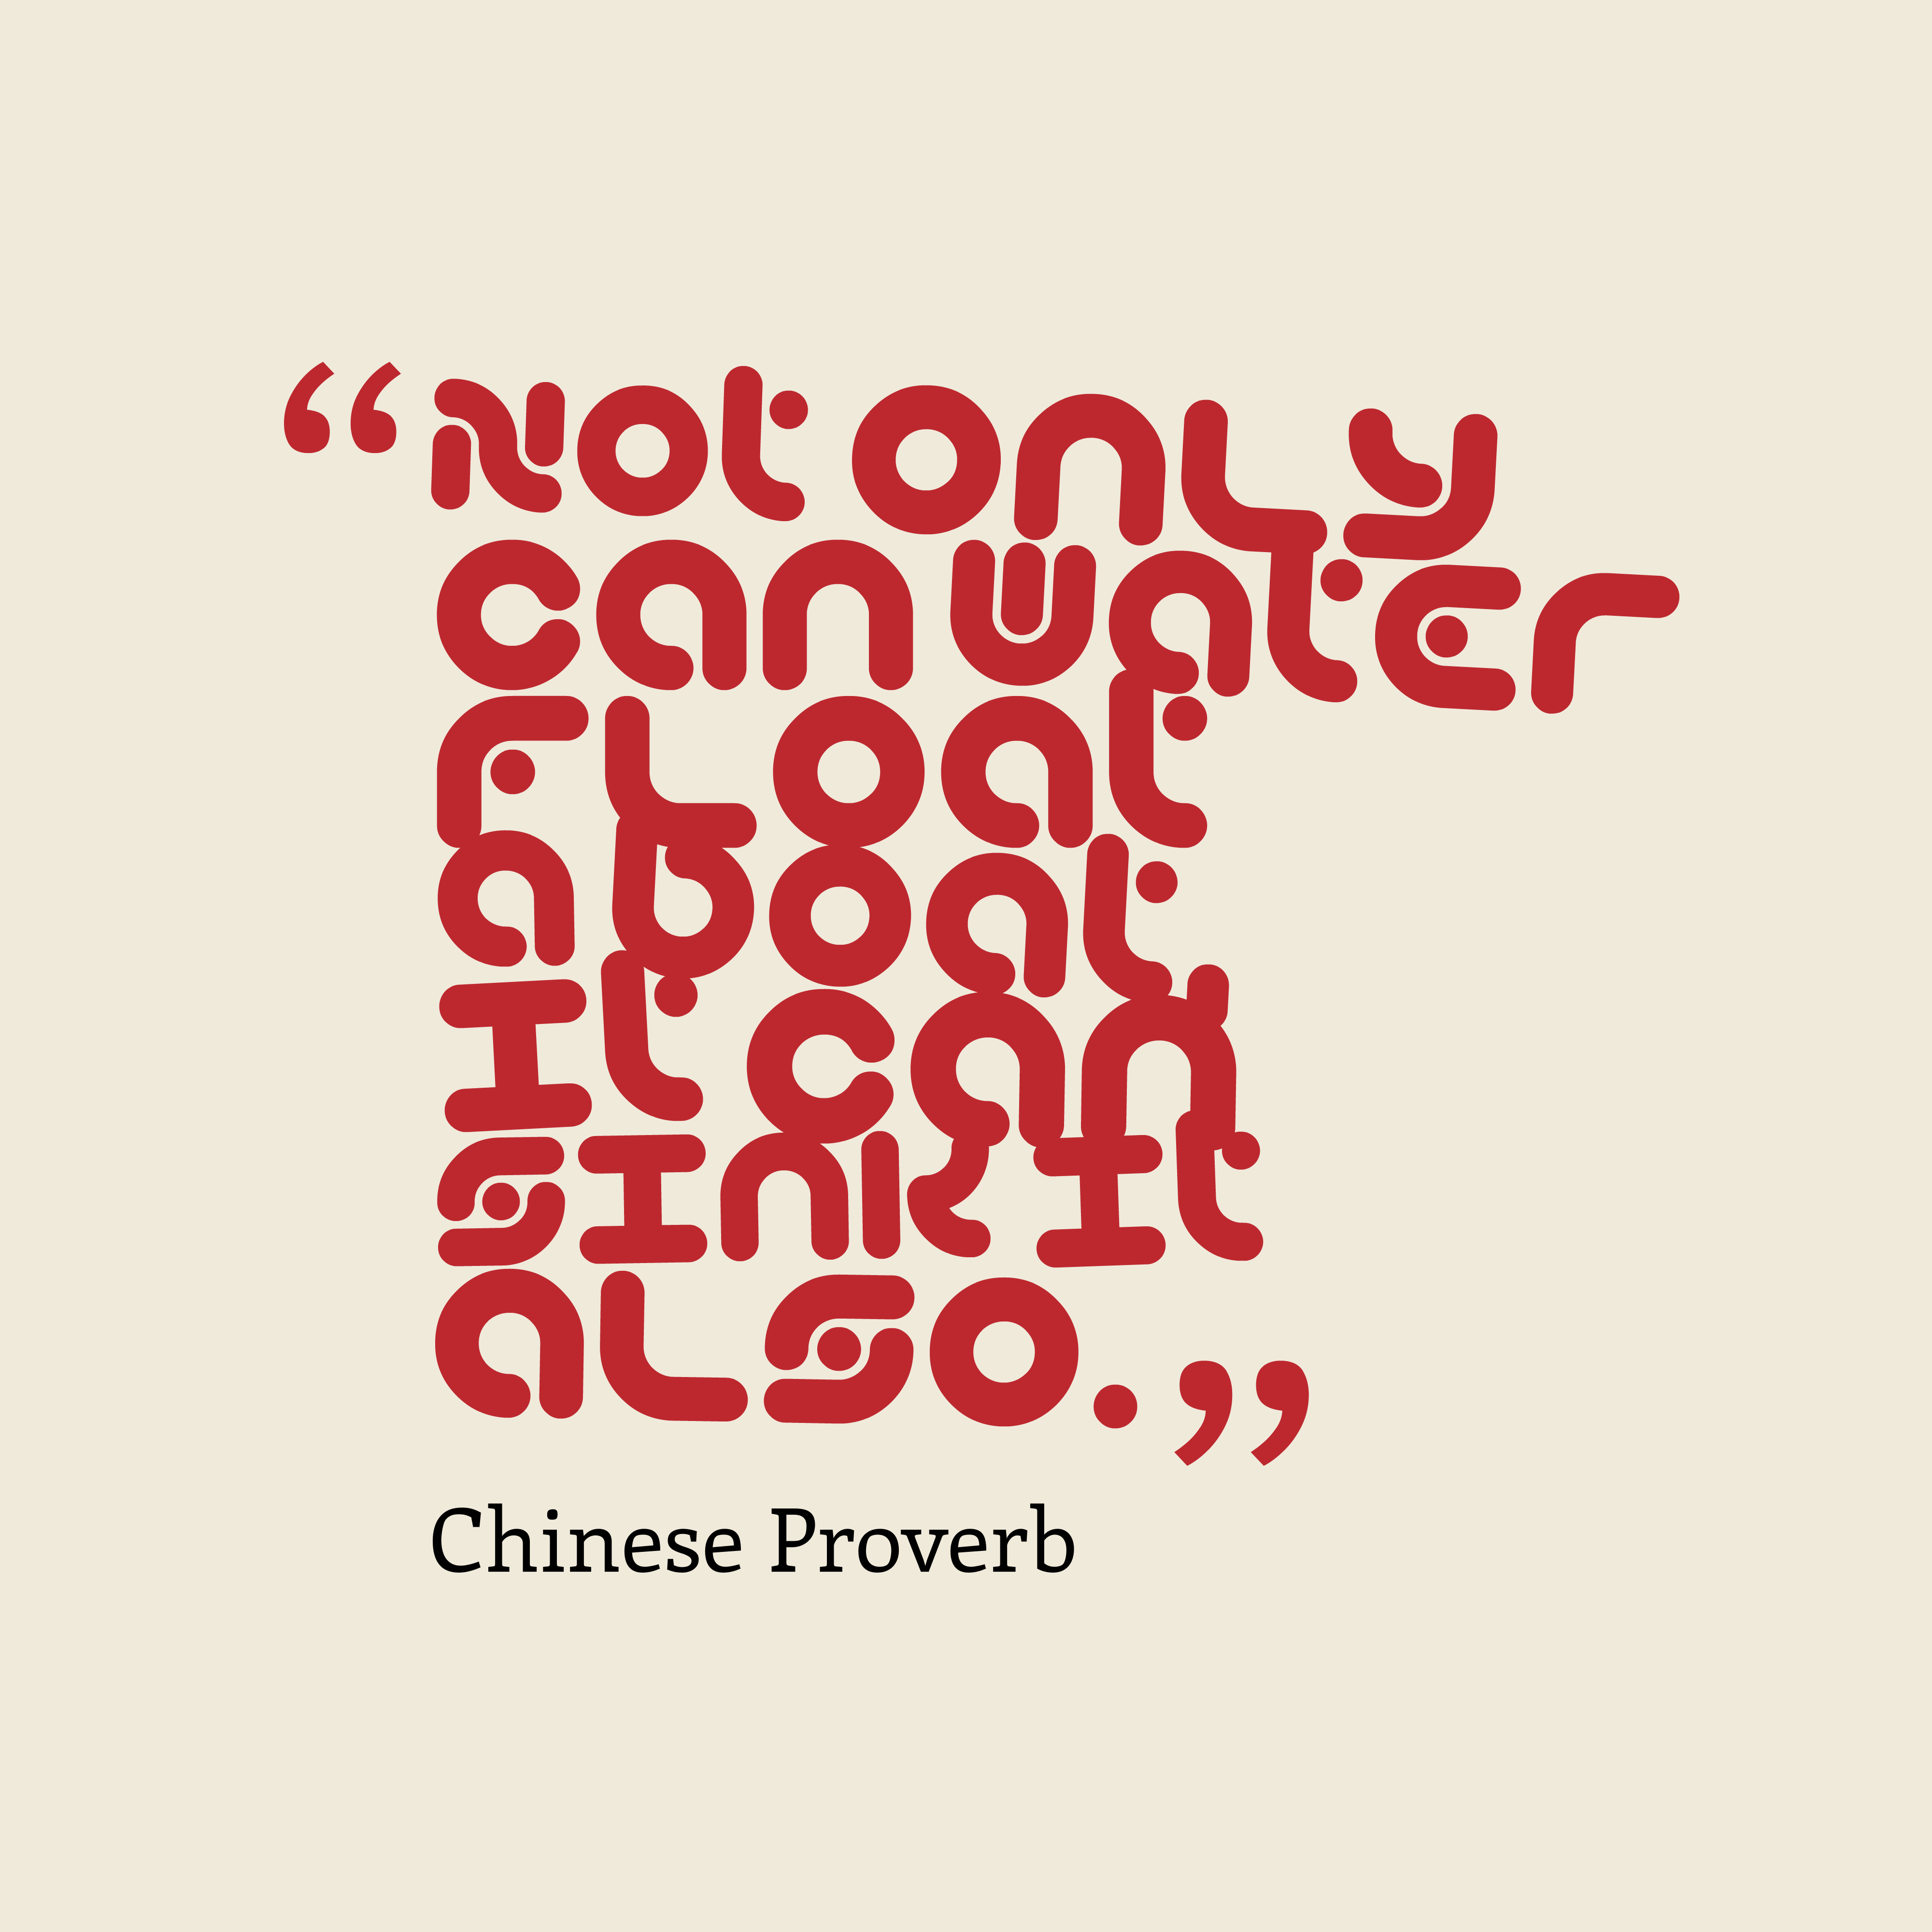 Picture Chinese proverb about nature. | QuotesCover.com